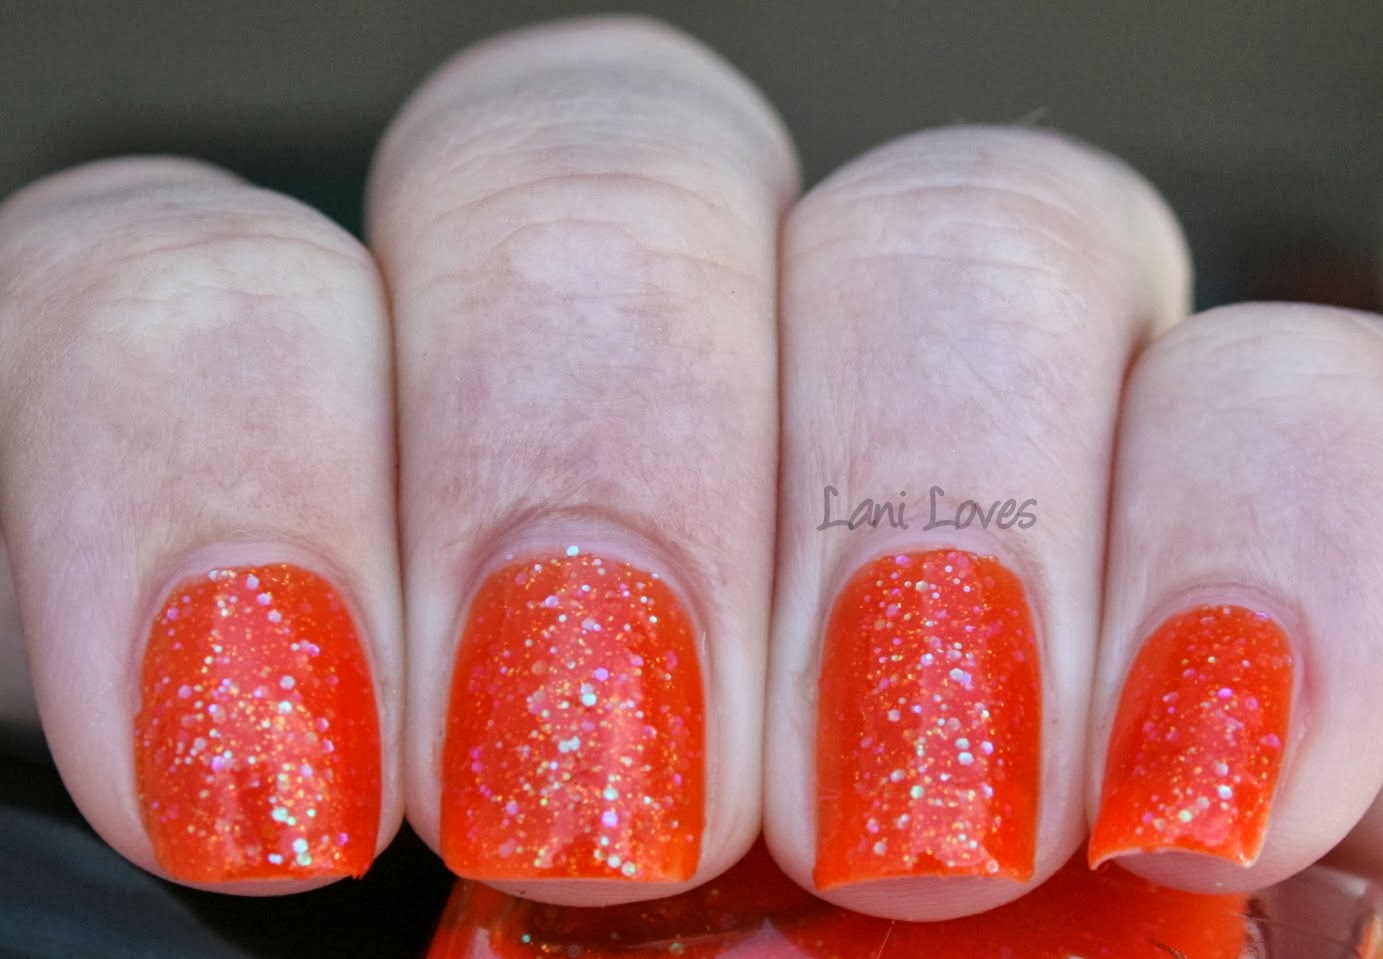 Pahlish - Who Loves Orange Soda?! swatch